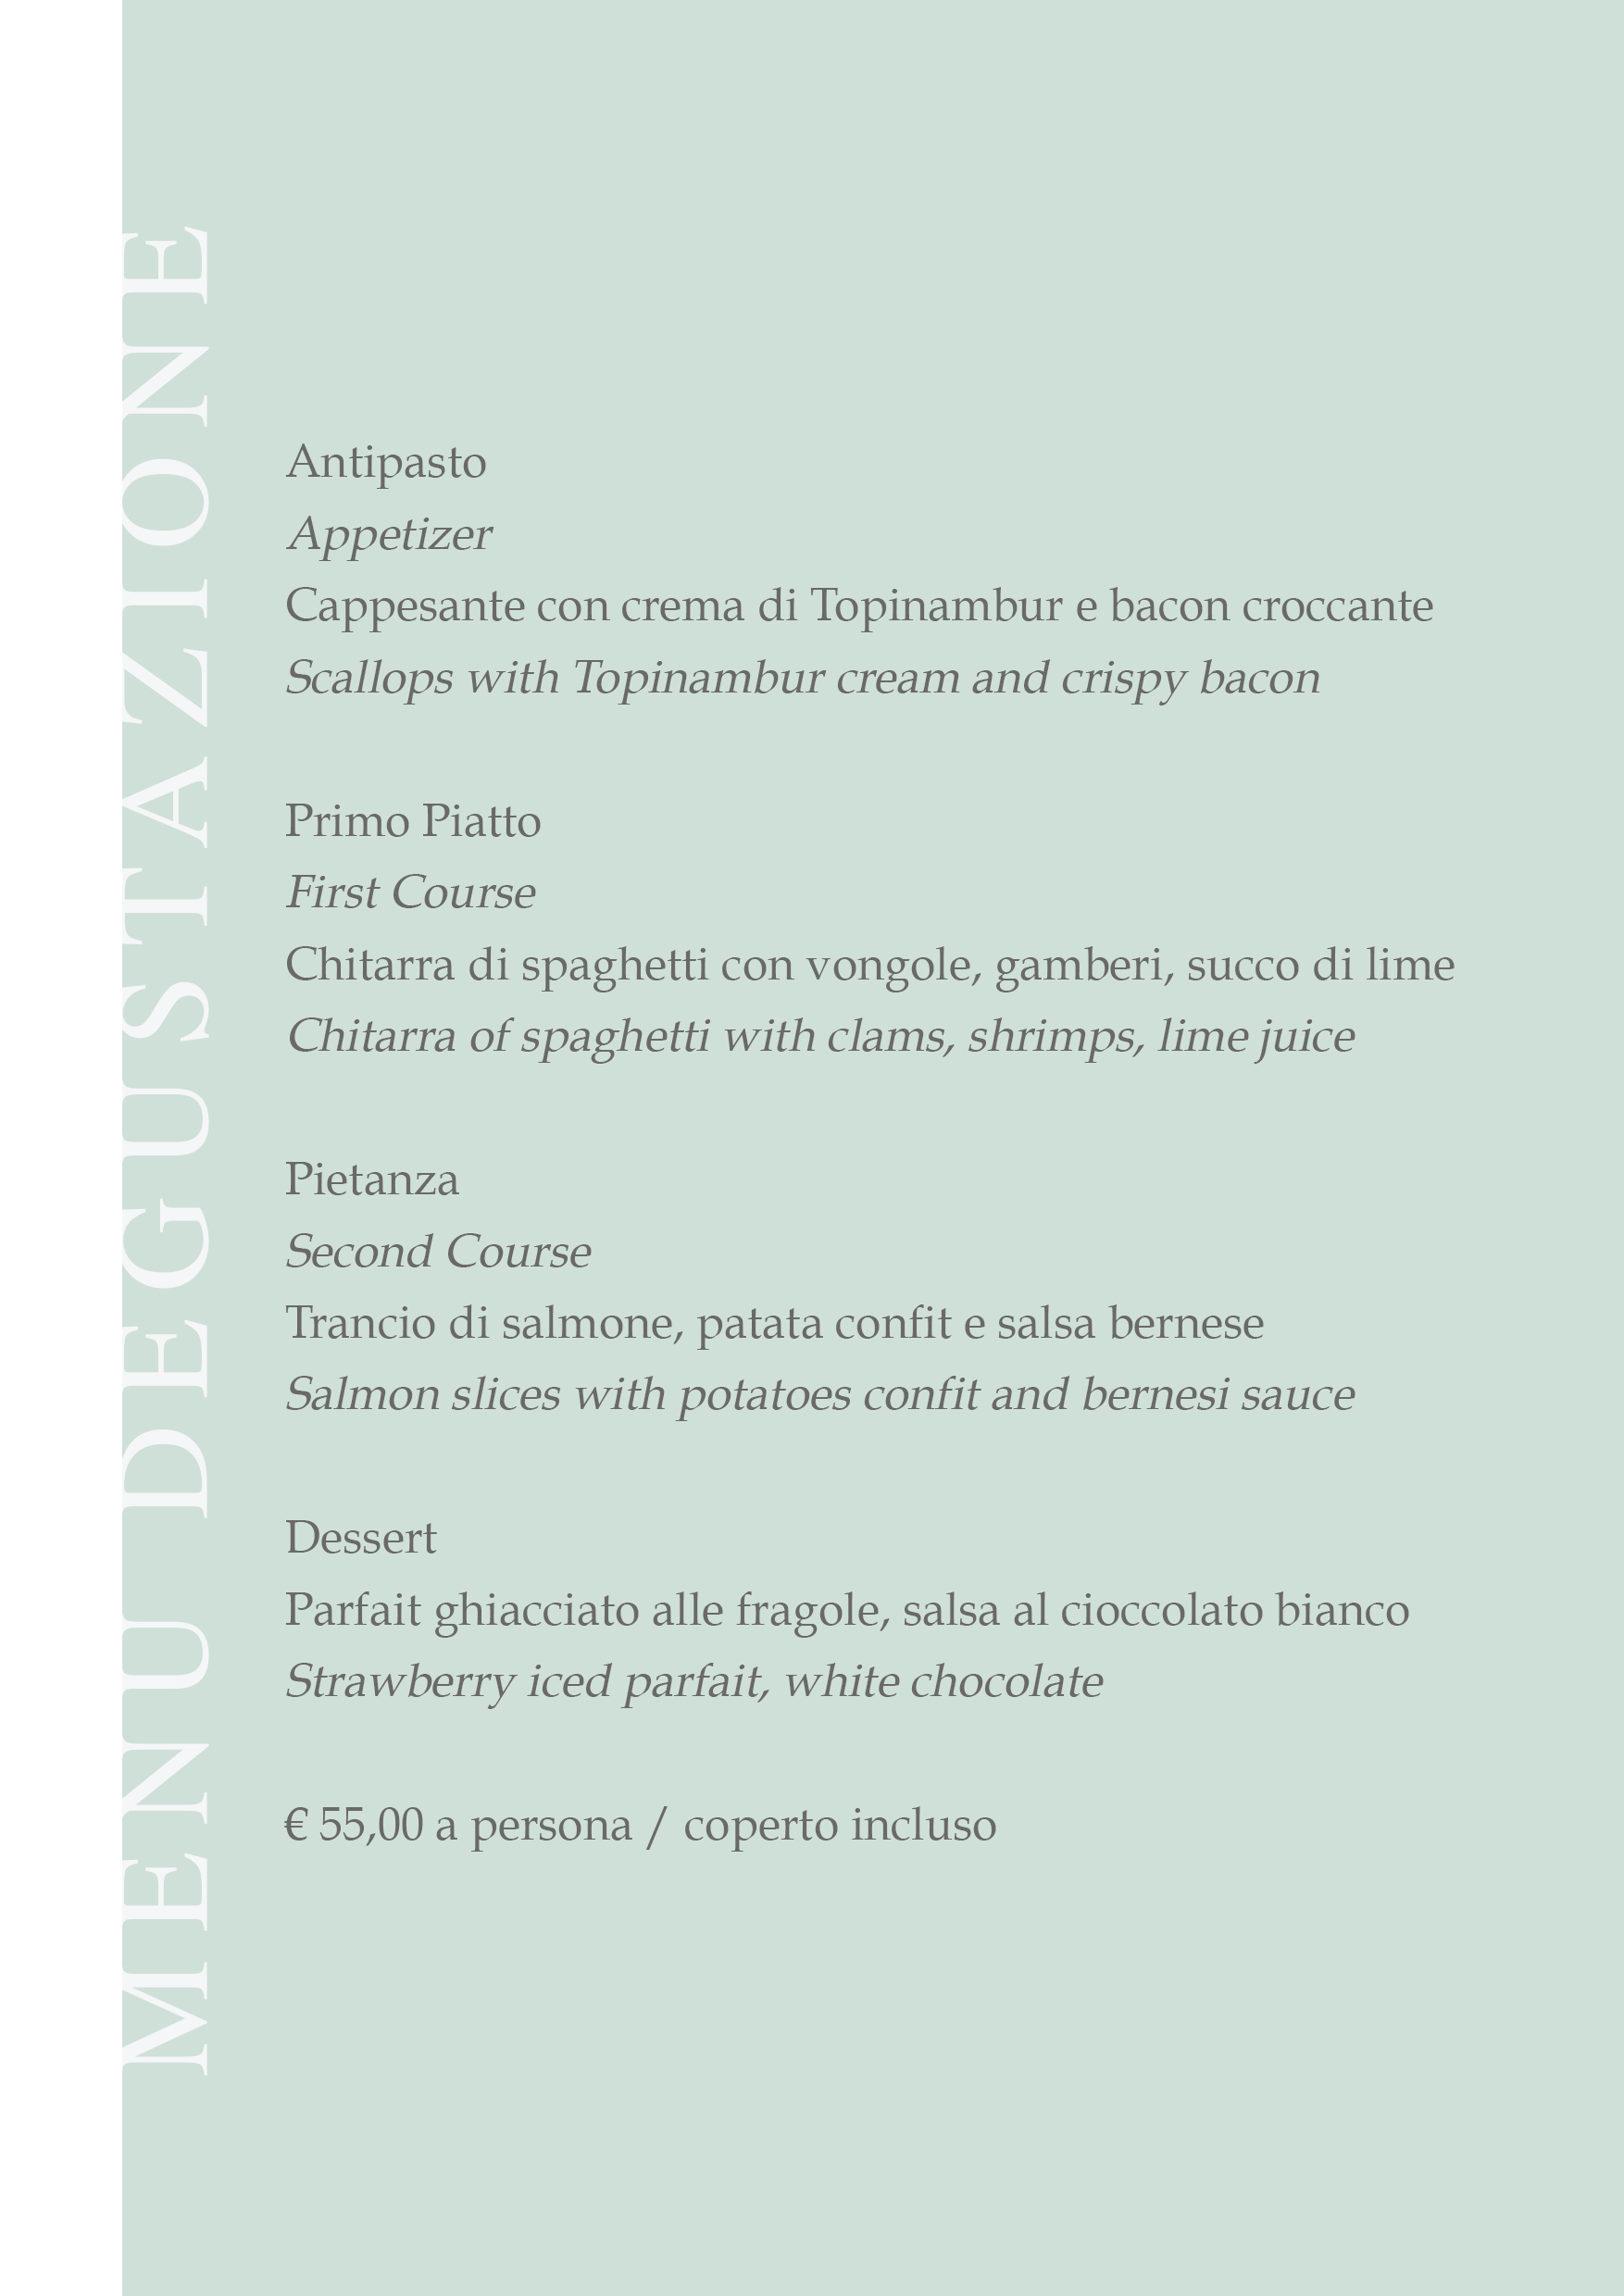 Menu Acqua interno